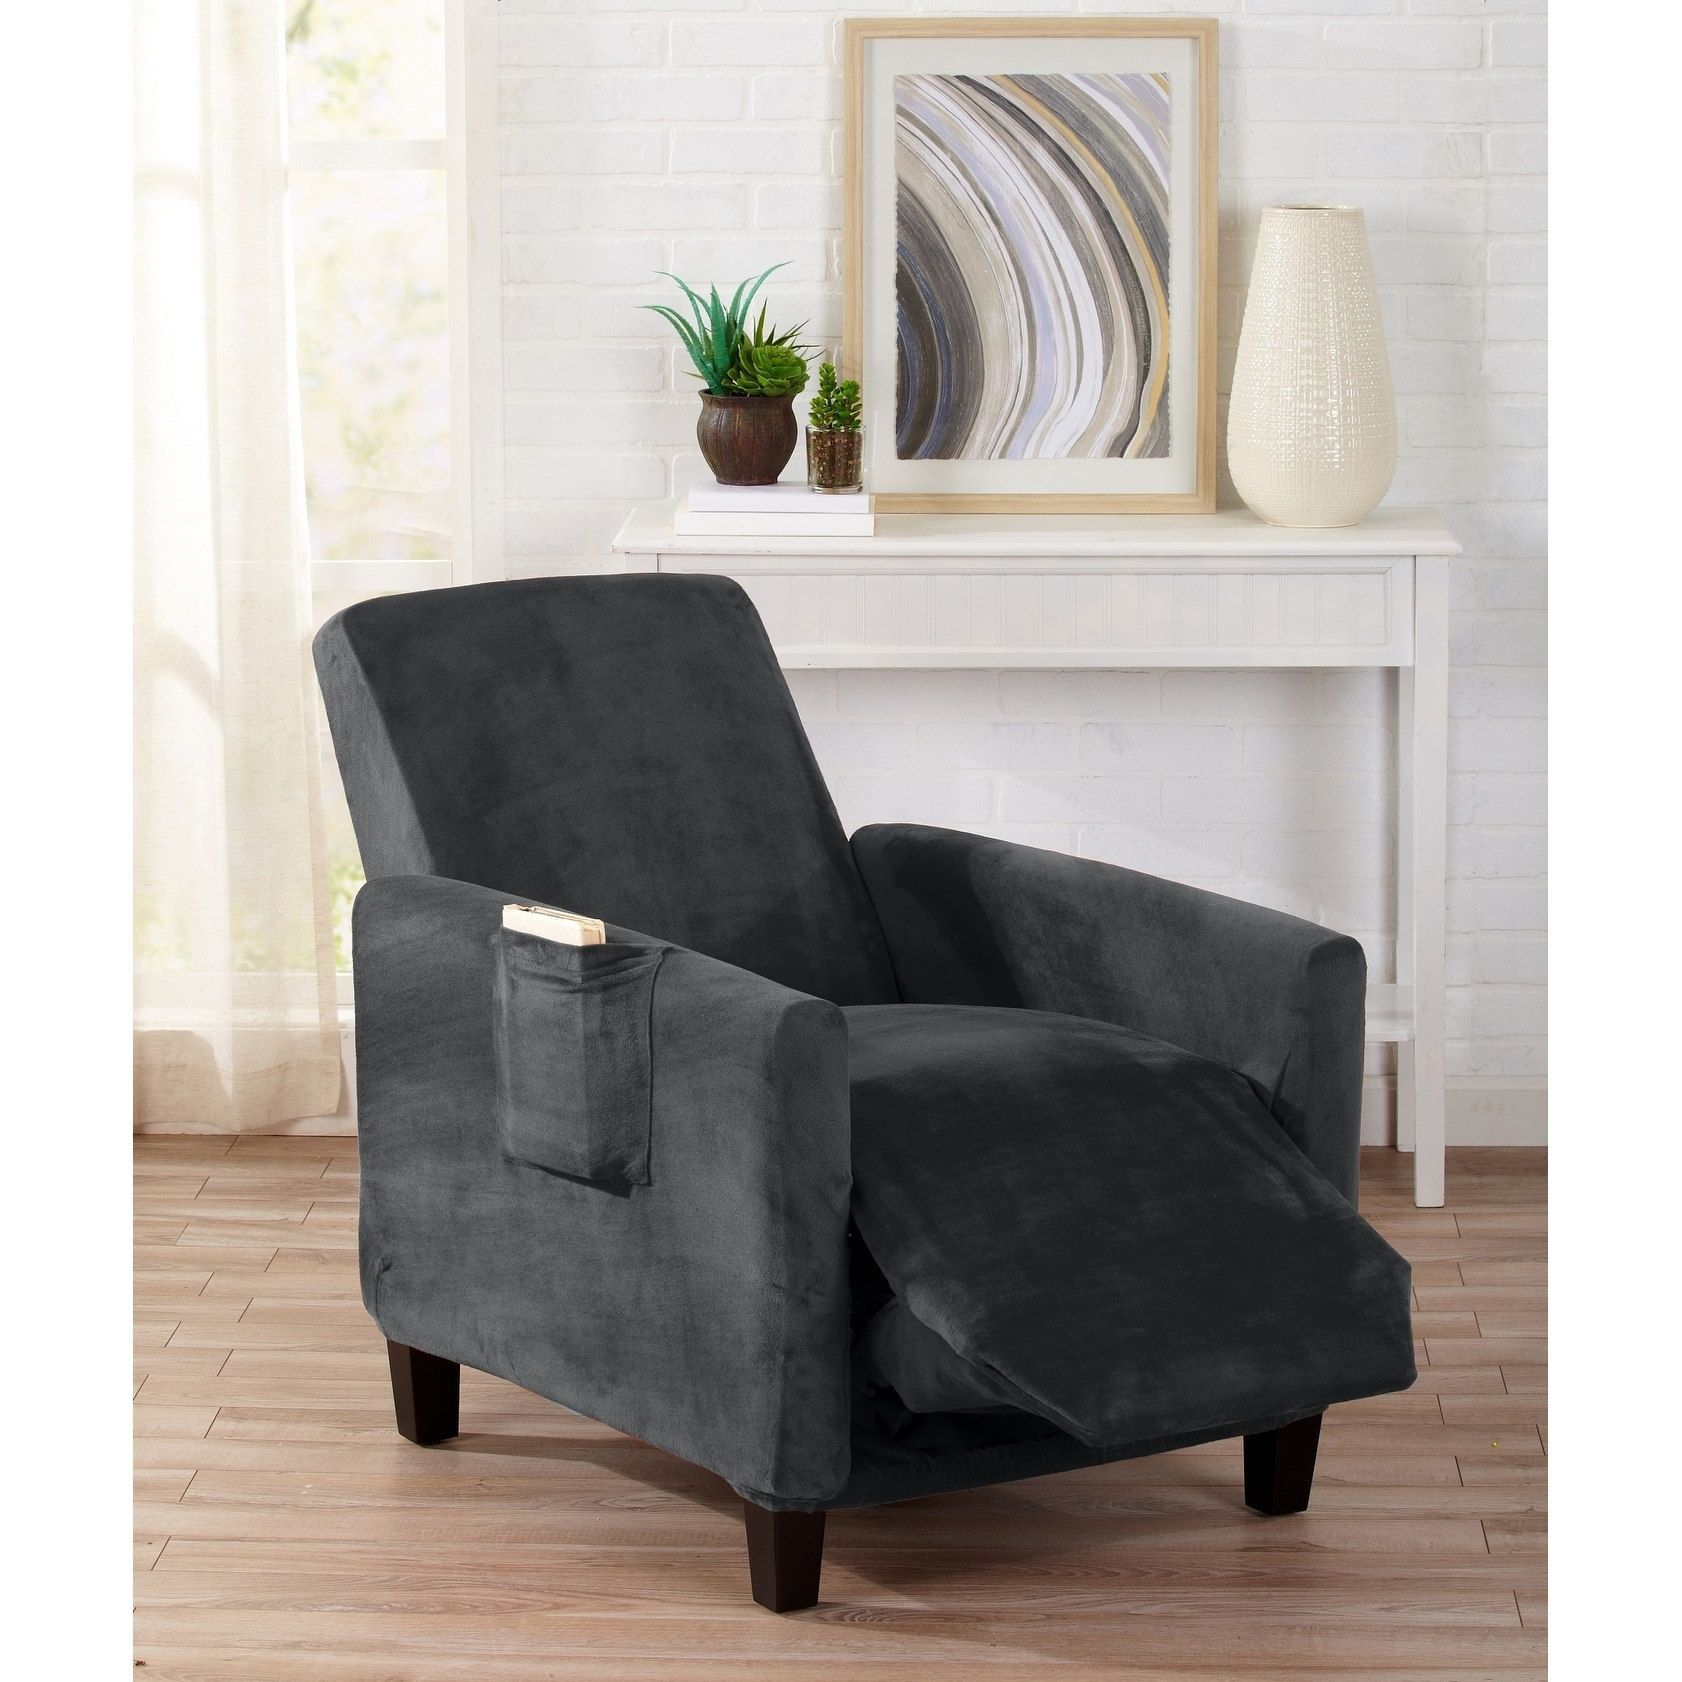 slipcovers chair throughout furniture slipcover recliner recliners covers for slip magnificent with diy